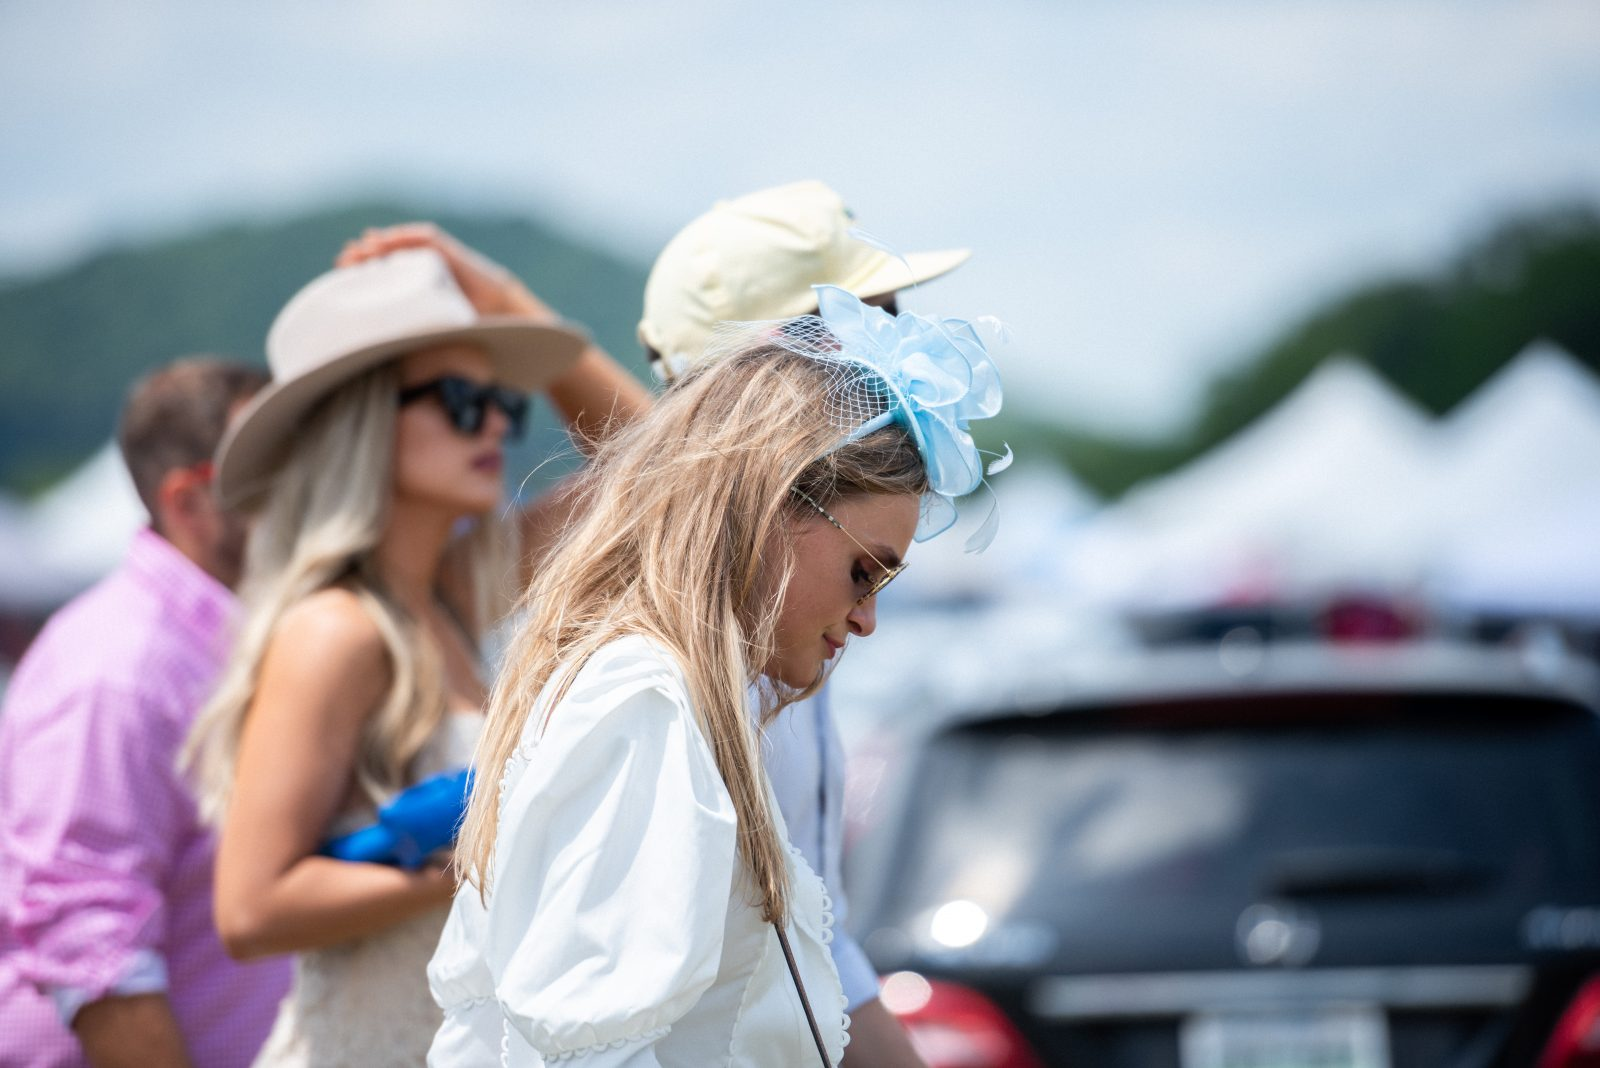 3 women and a man heading to steeplechase 21